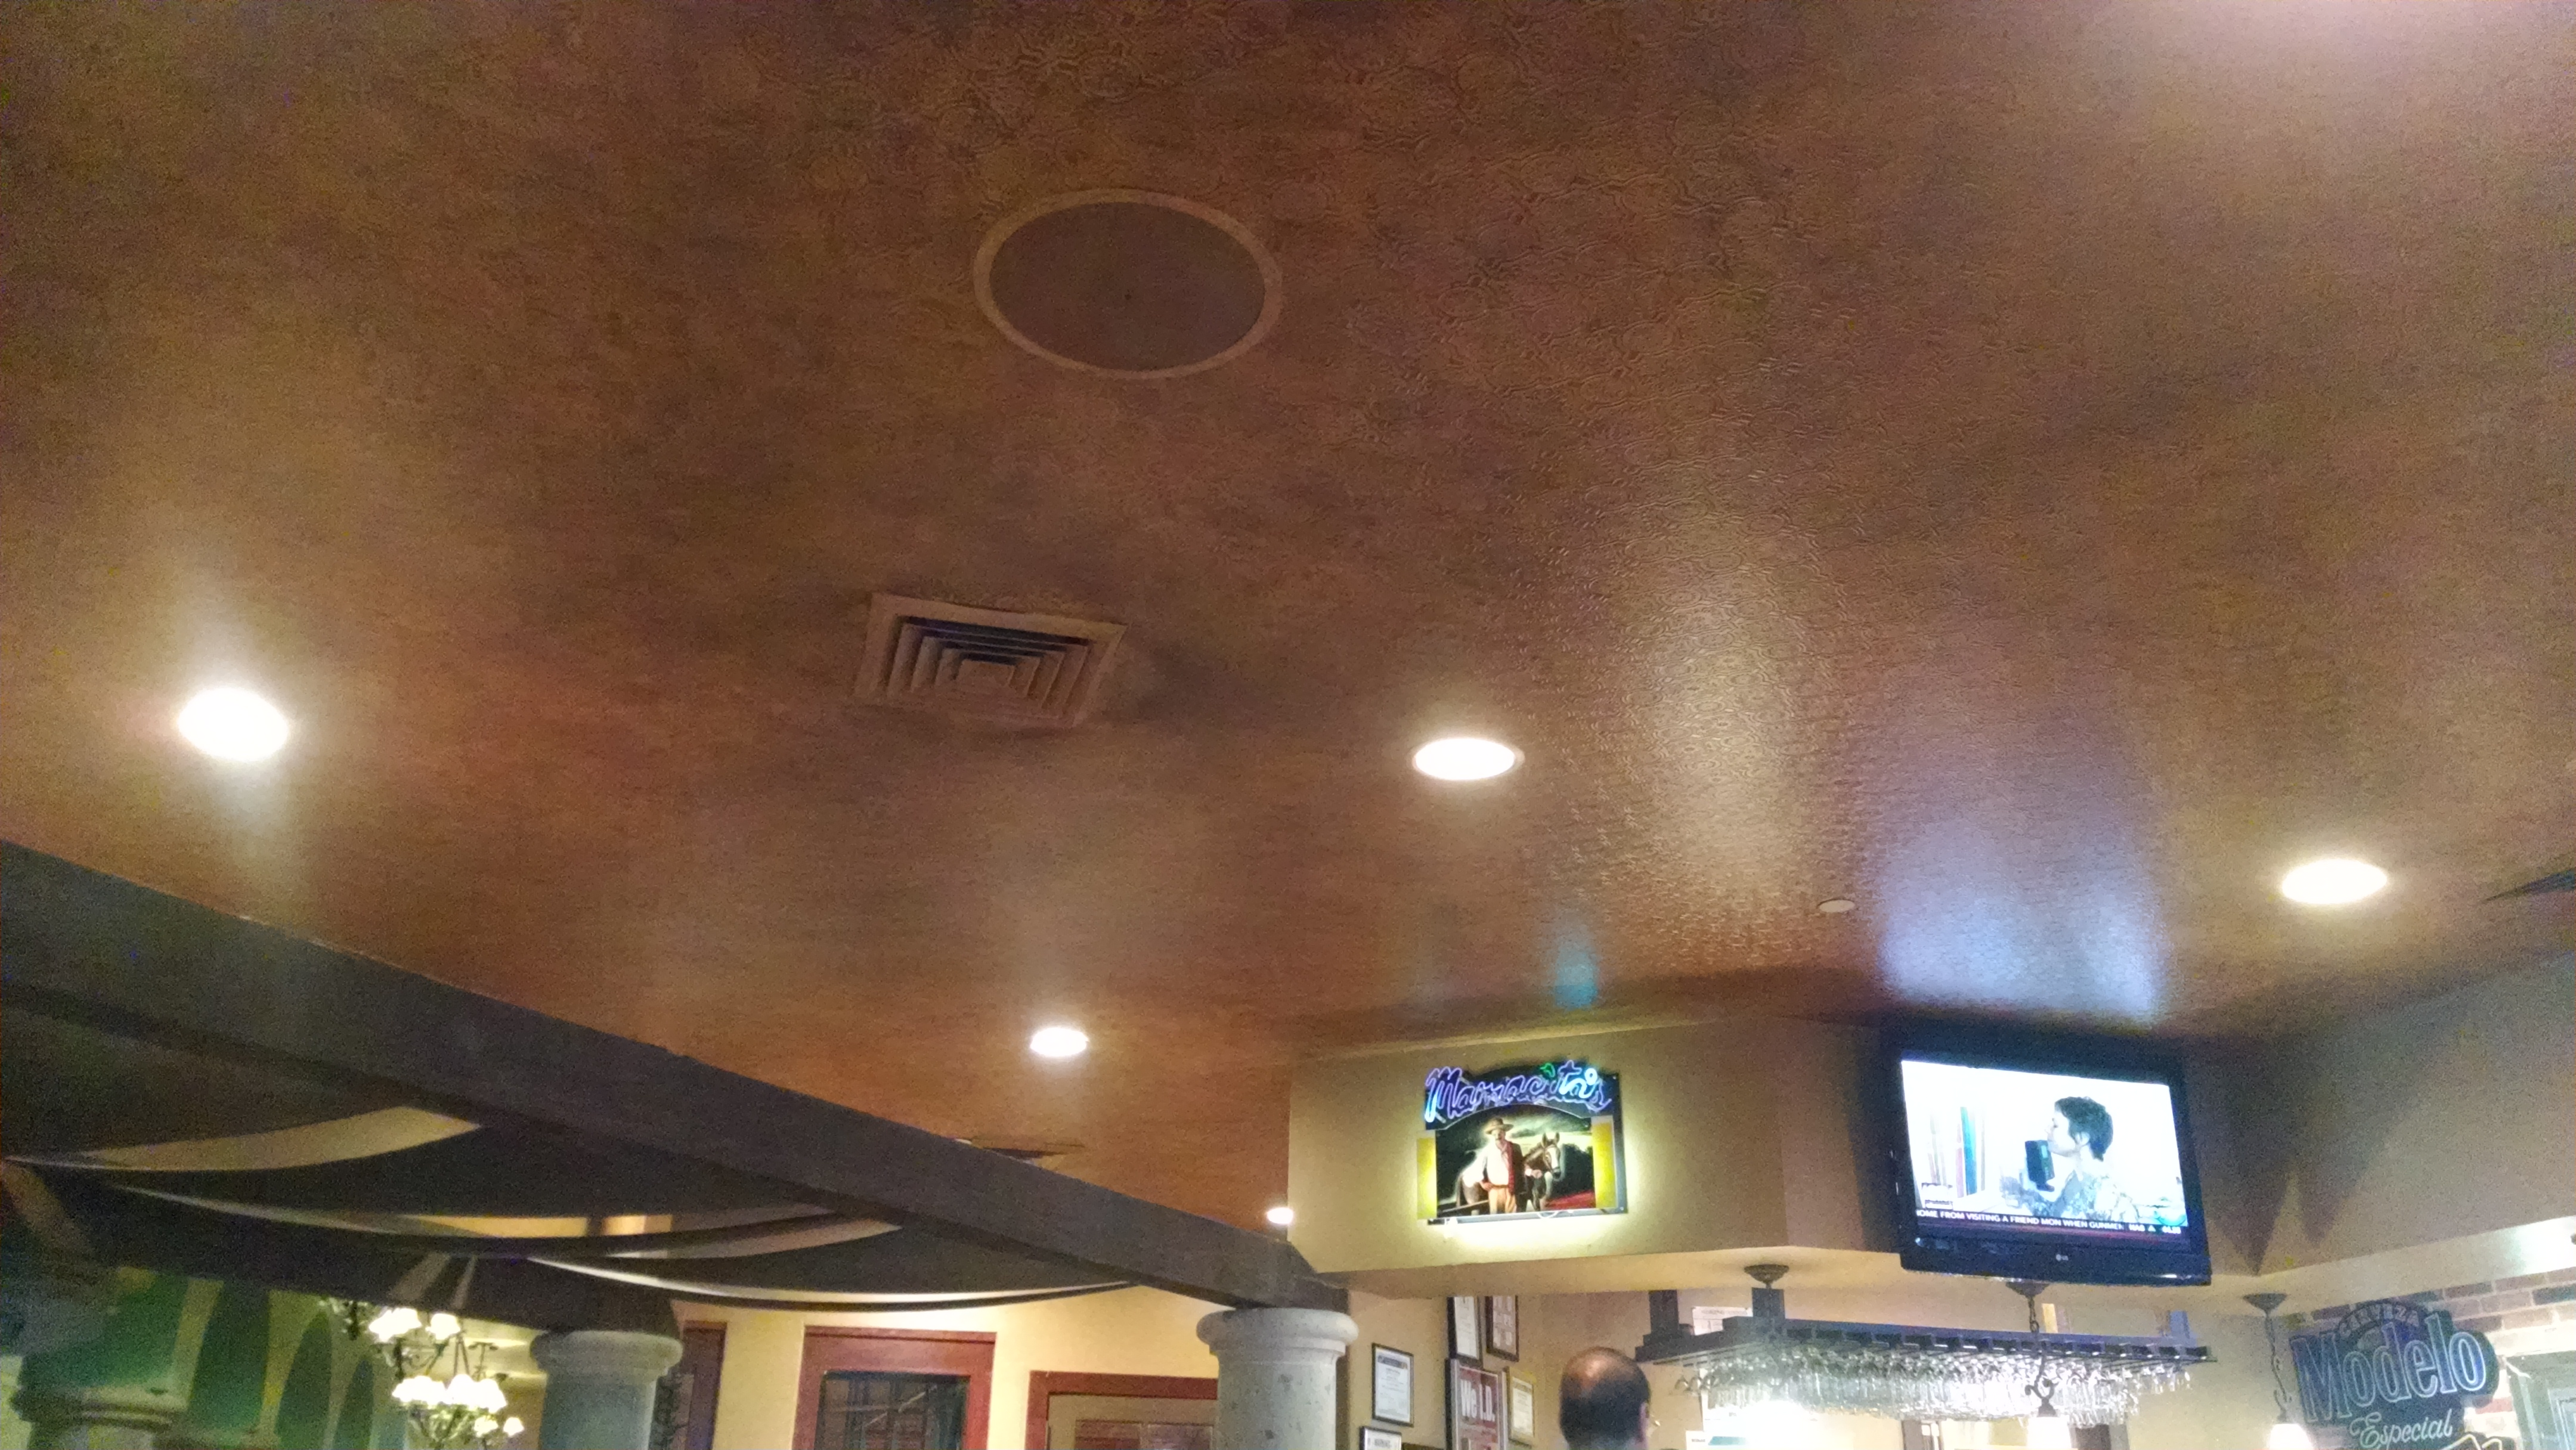 I-didnt-do-this-ceiling-in-Kerrville-TX-MAMACITAS-mexican-restaurant-but-it-looks-lik-wallpaper-wp5008868